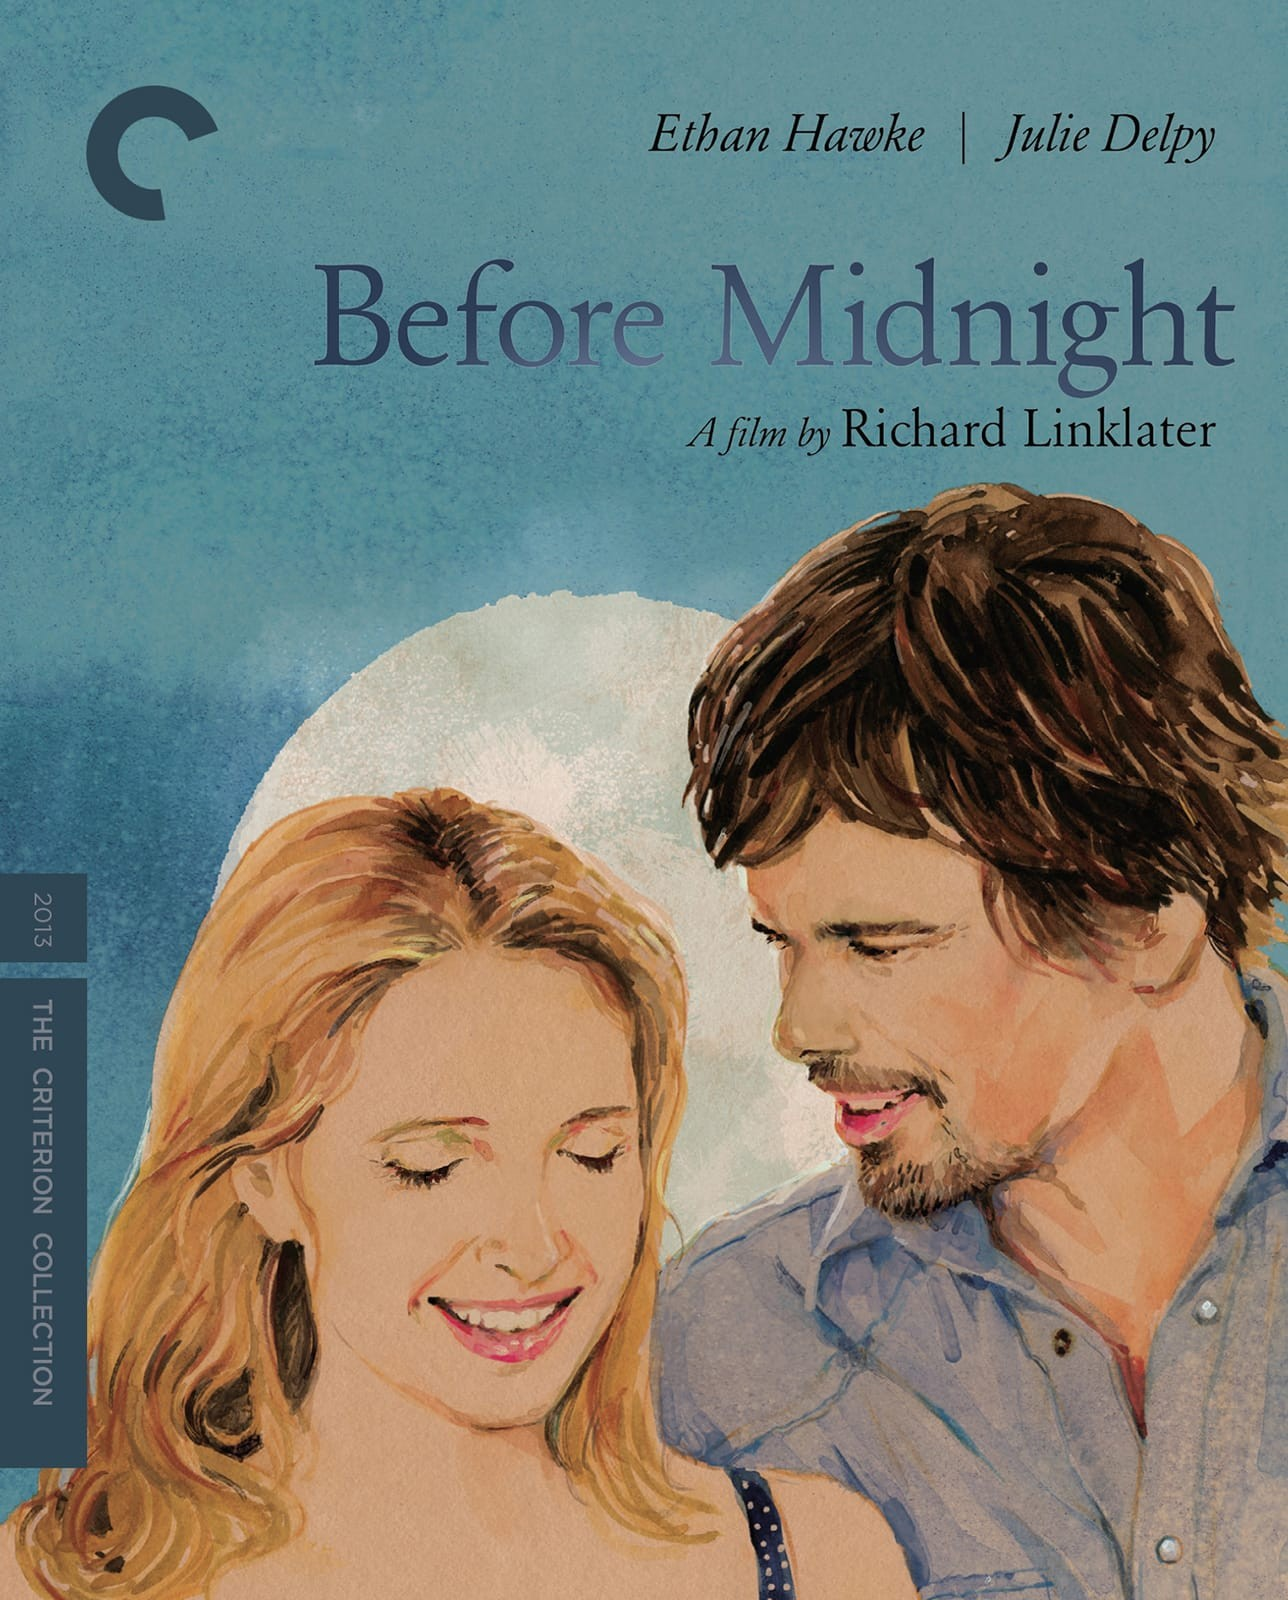 Before Midnight (2013) | The Criterion Collection